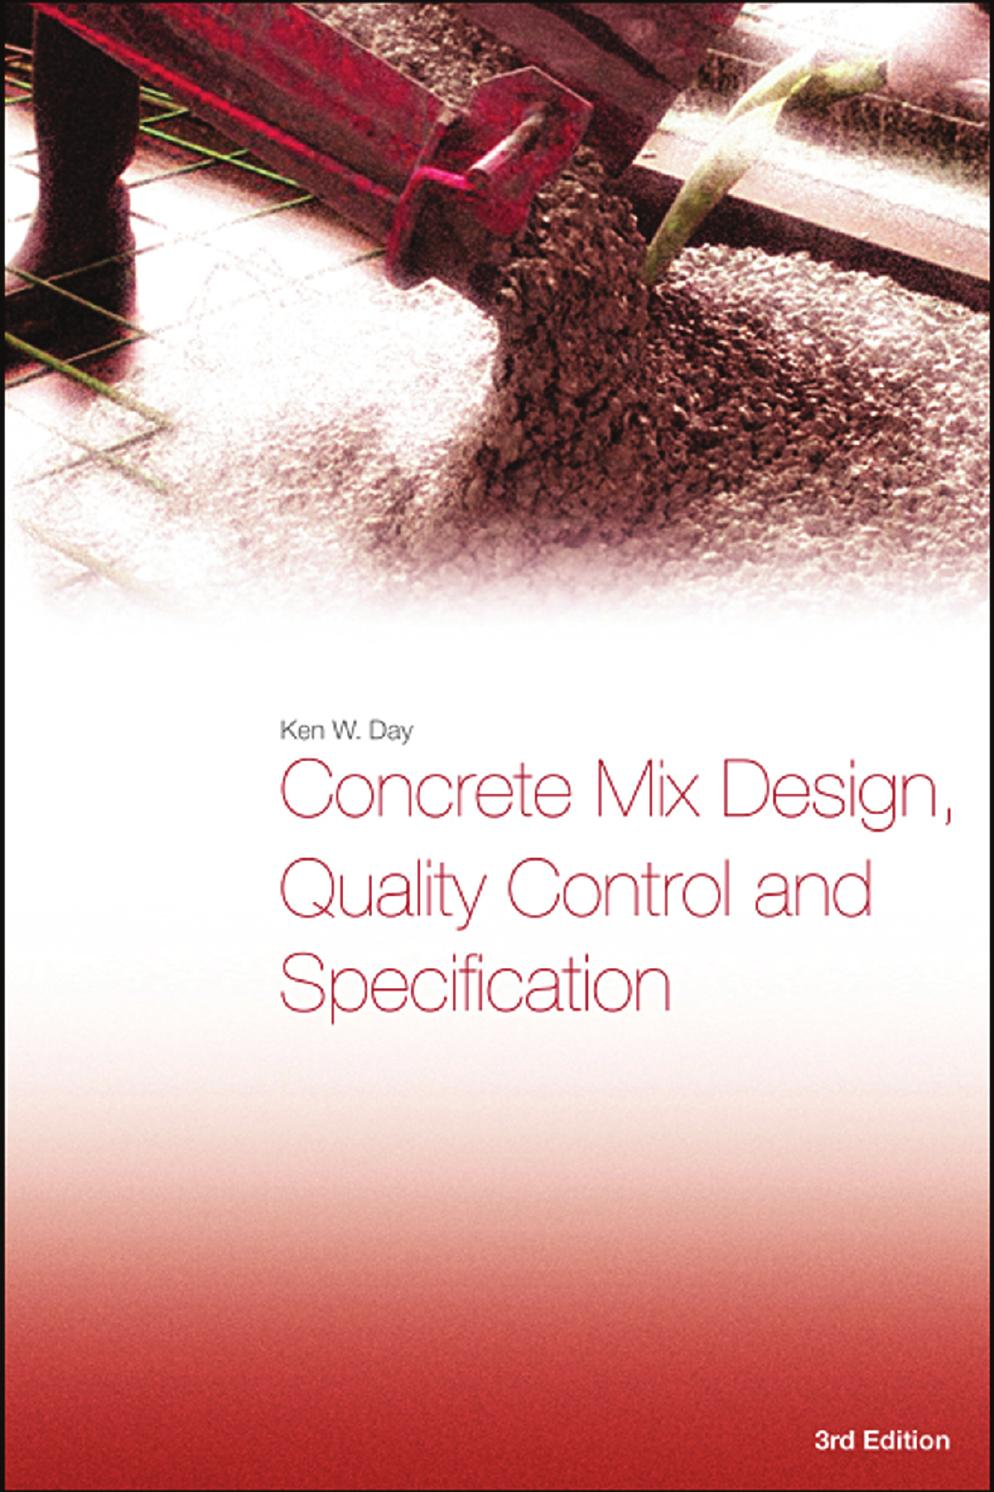 Concrete Mix Design Quality Control And Specification 3rd Ed K Day Taylor And Francis 2006 Bbs By Qassim Ahmed Issuu